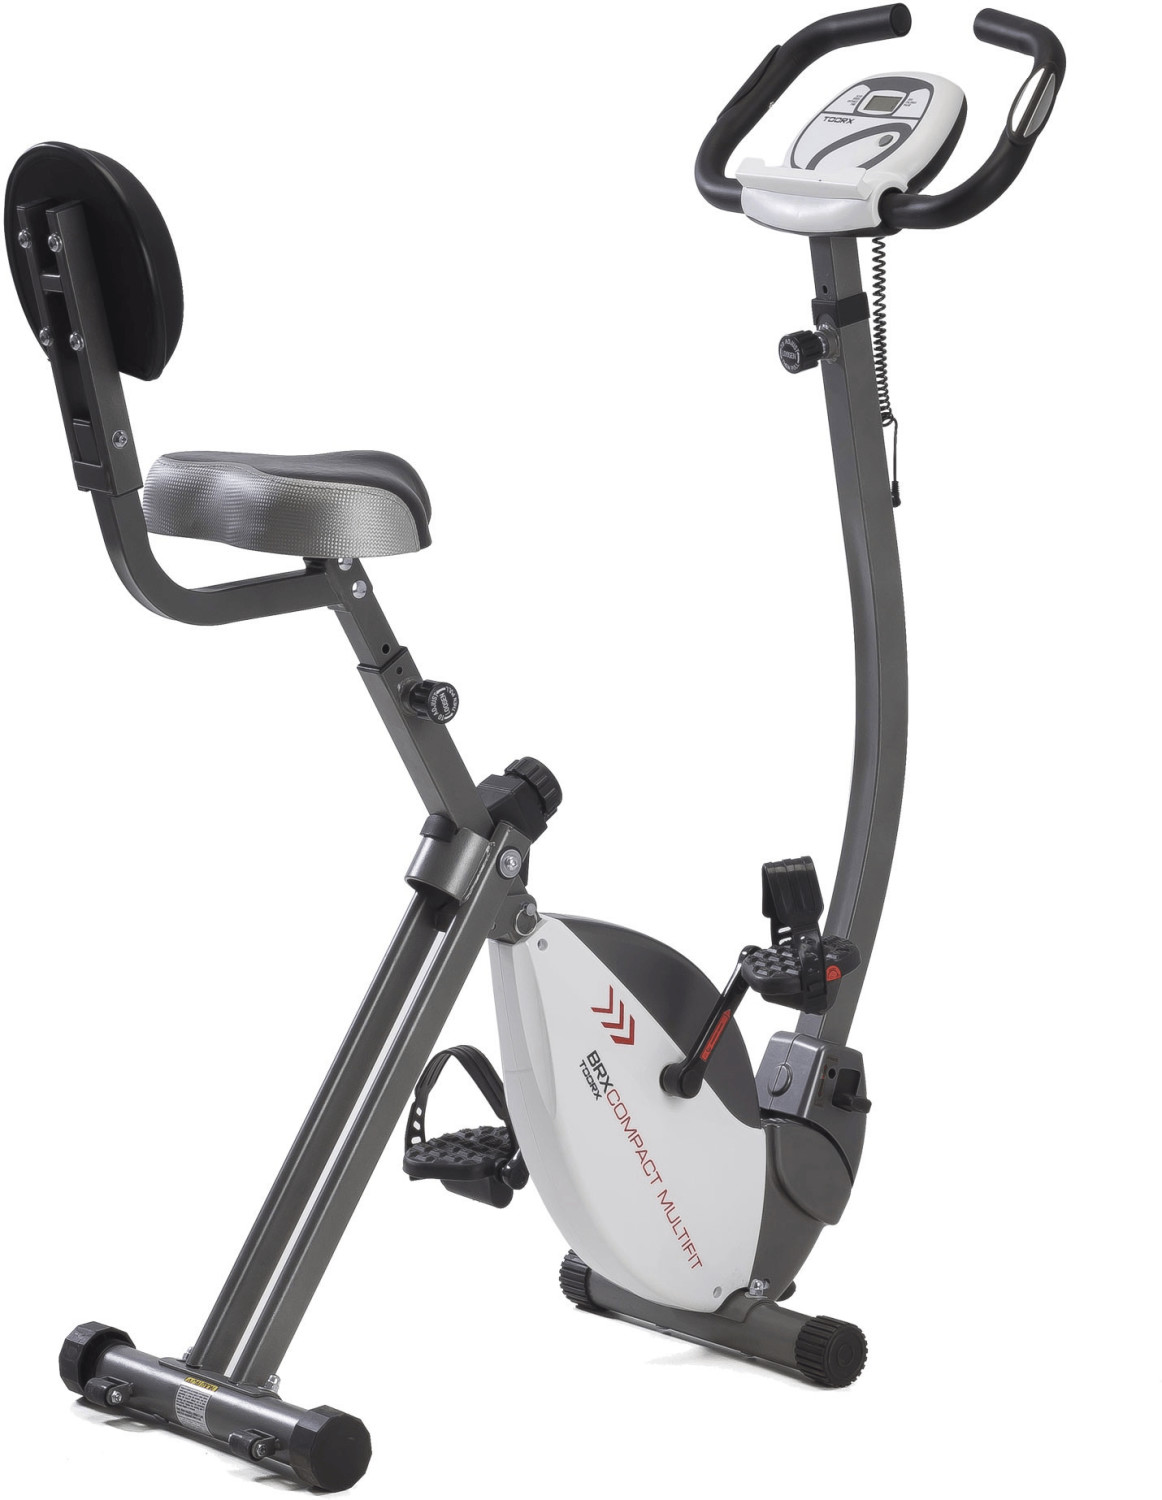 Toorx BRX Compact